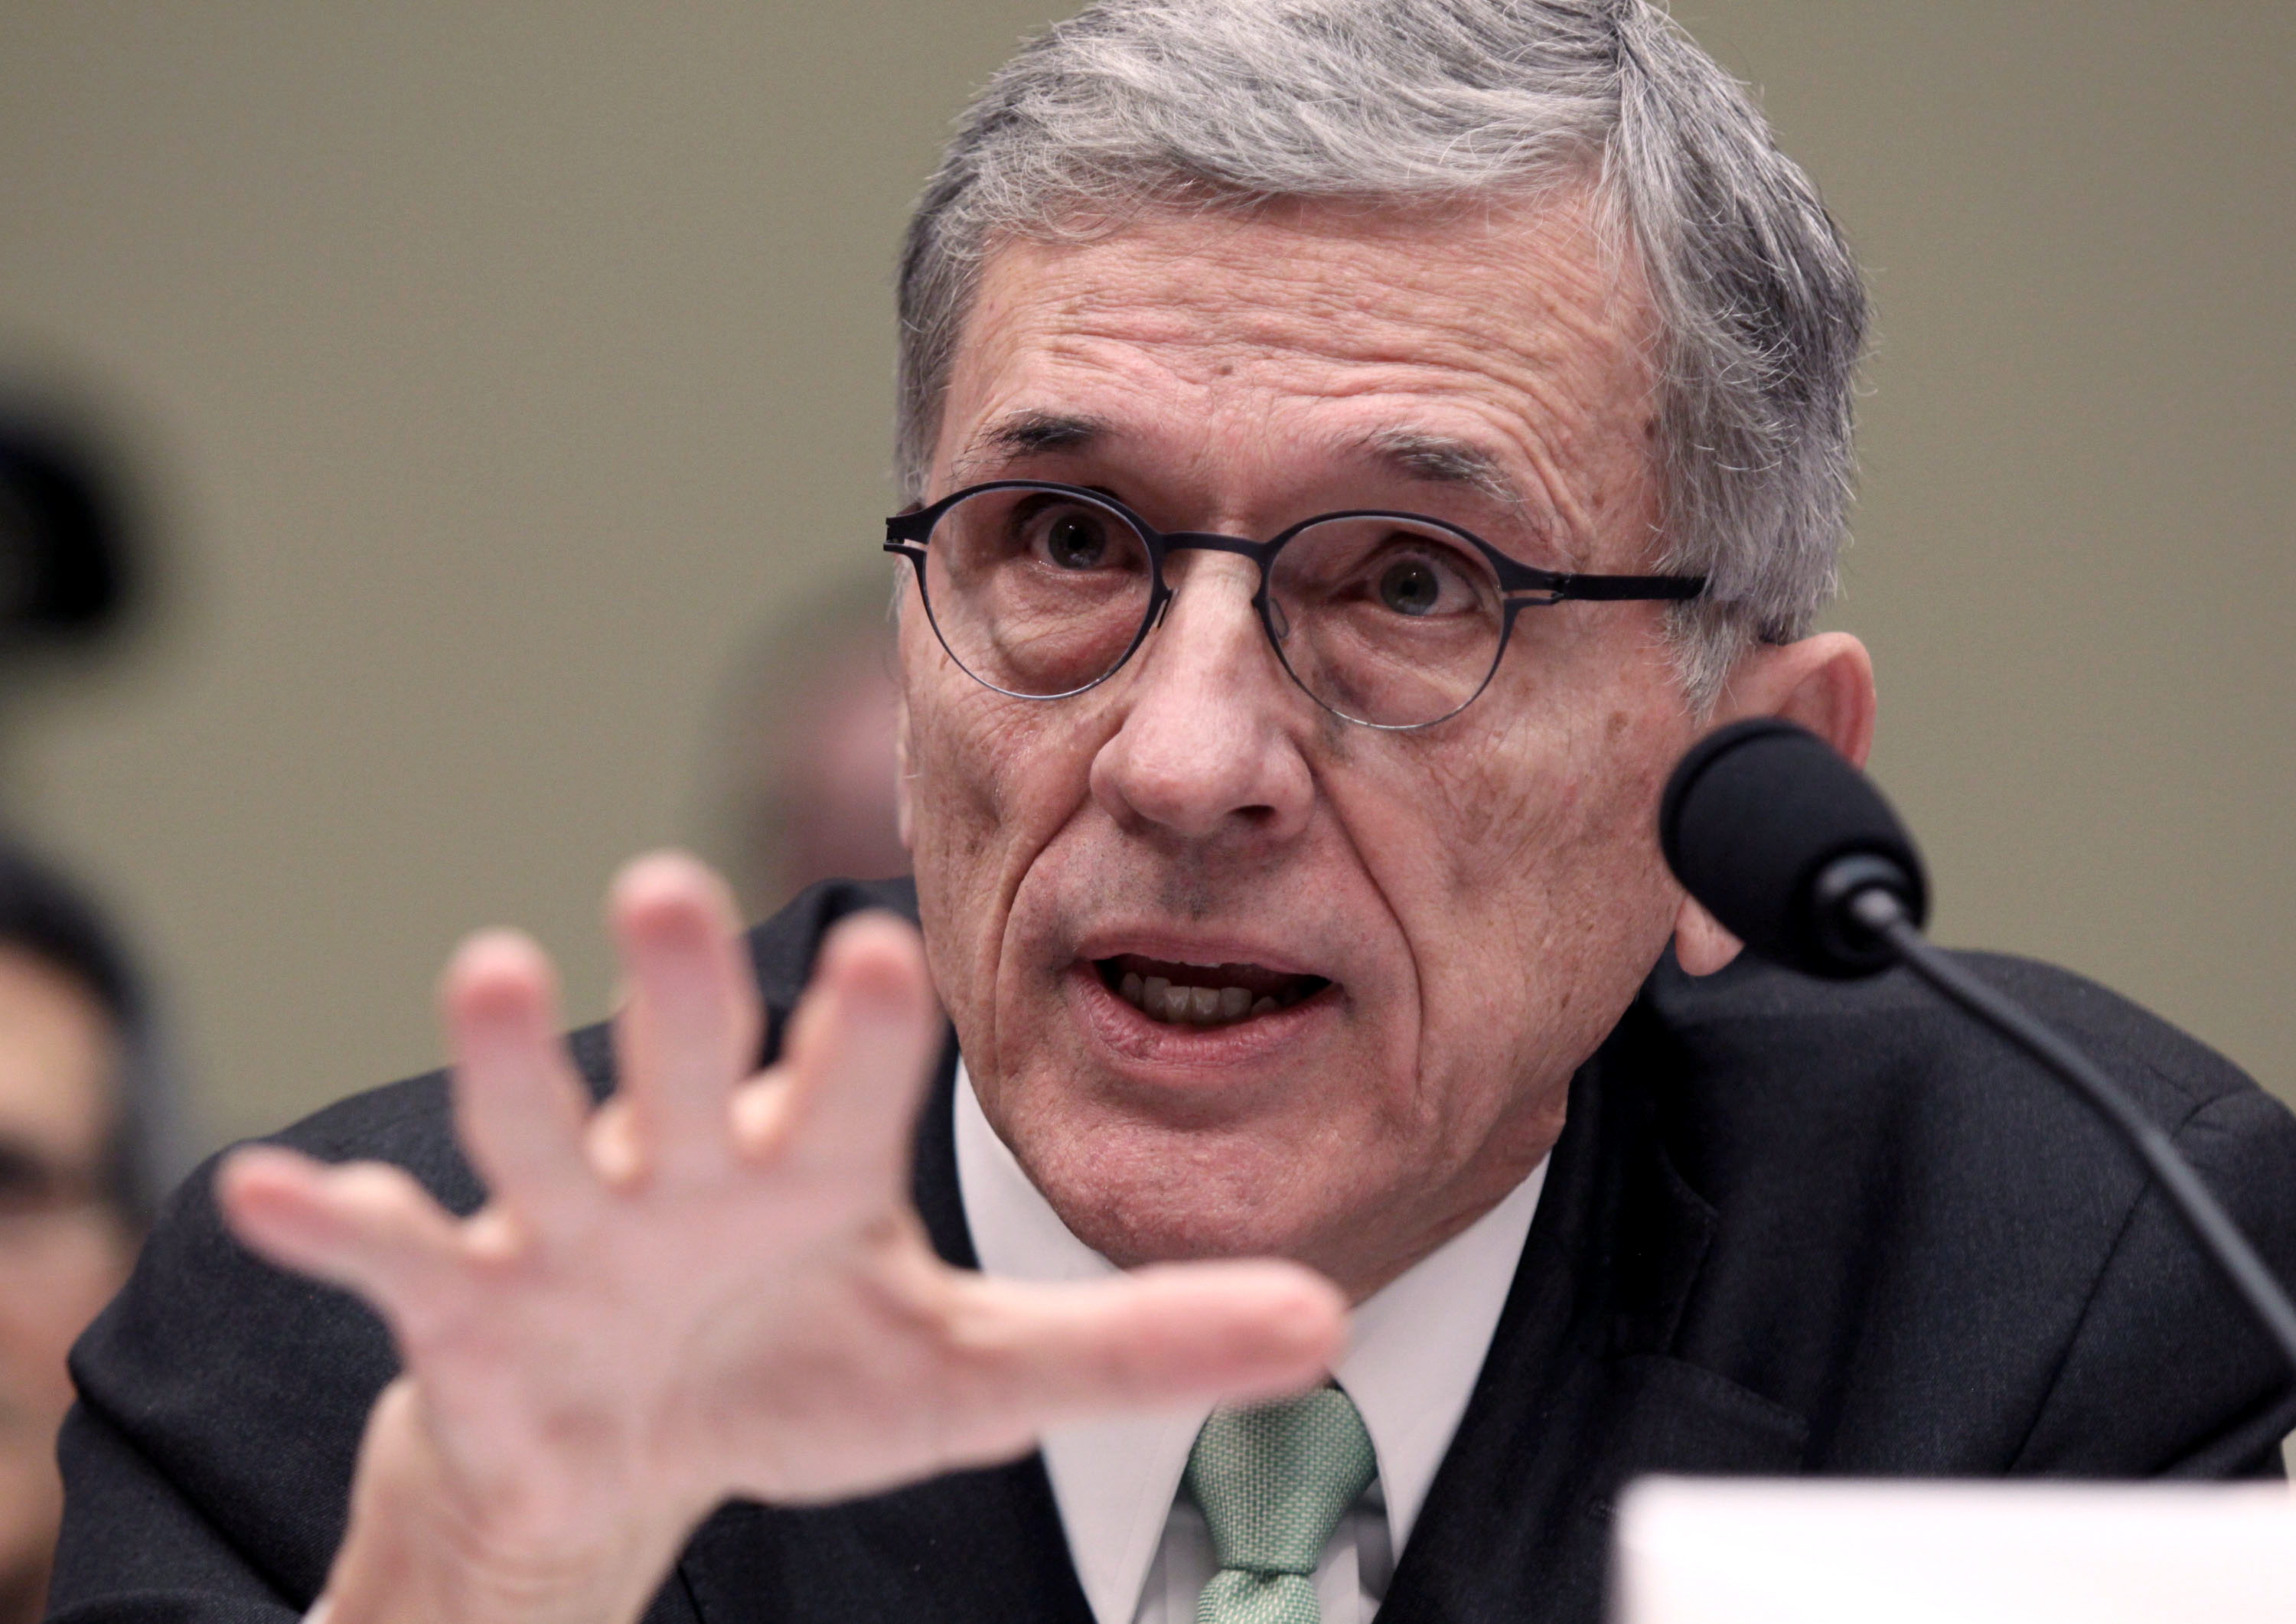 ISPs must get permission to share Internet users' private browsing history: FCC - Washington Times